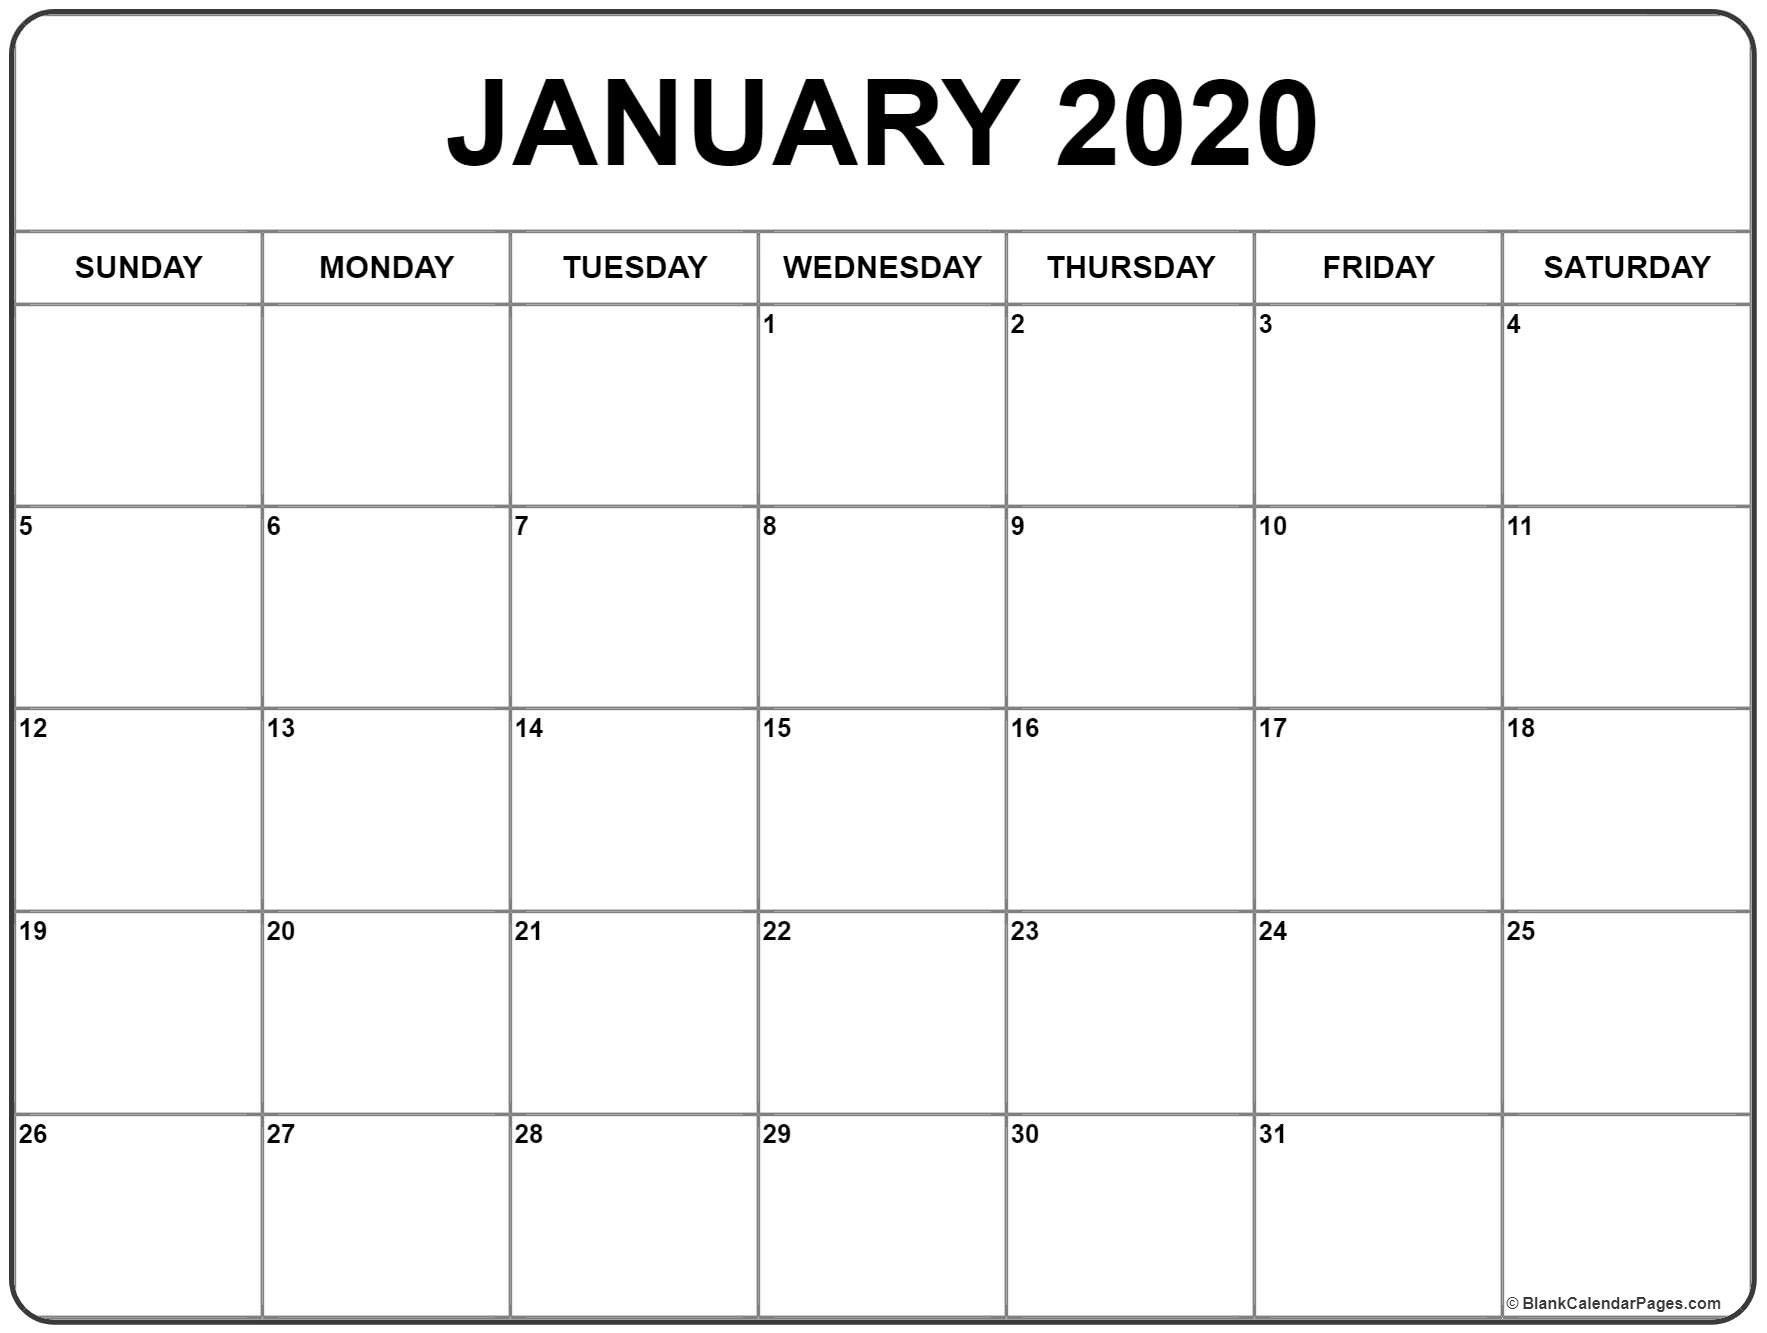 January 2020 Calendar 56 Templates Of 2020 Printable January-Blank 2020 Calendar Template